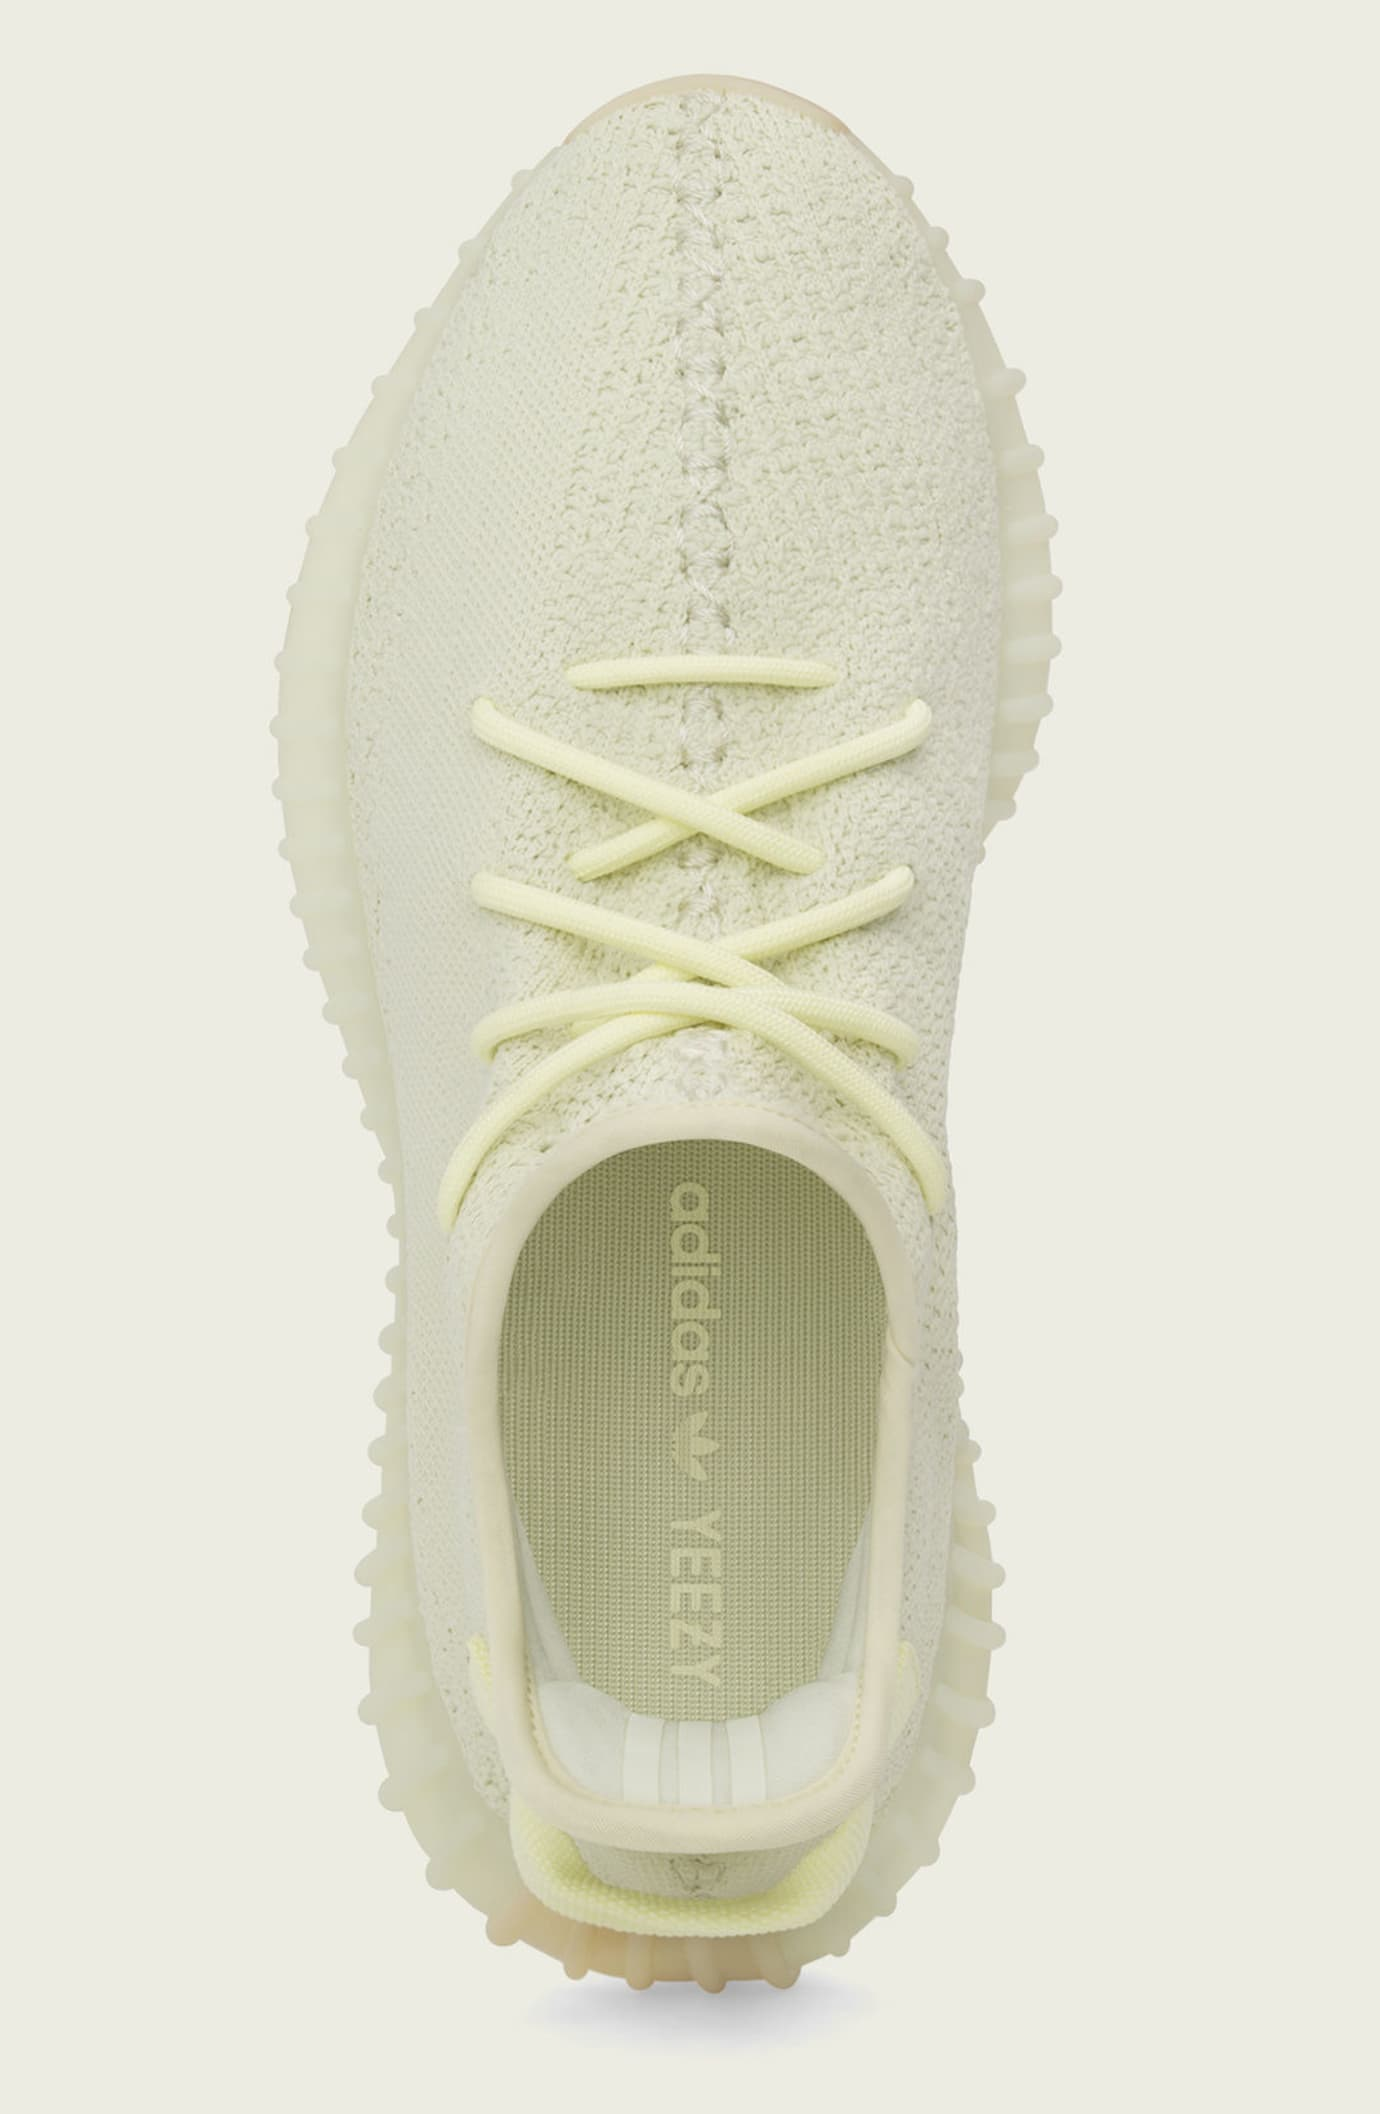 new style ad3a1 5888a Adidas Yeezy Boost 350 V2 'Butter' F36980 January 2018 ...